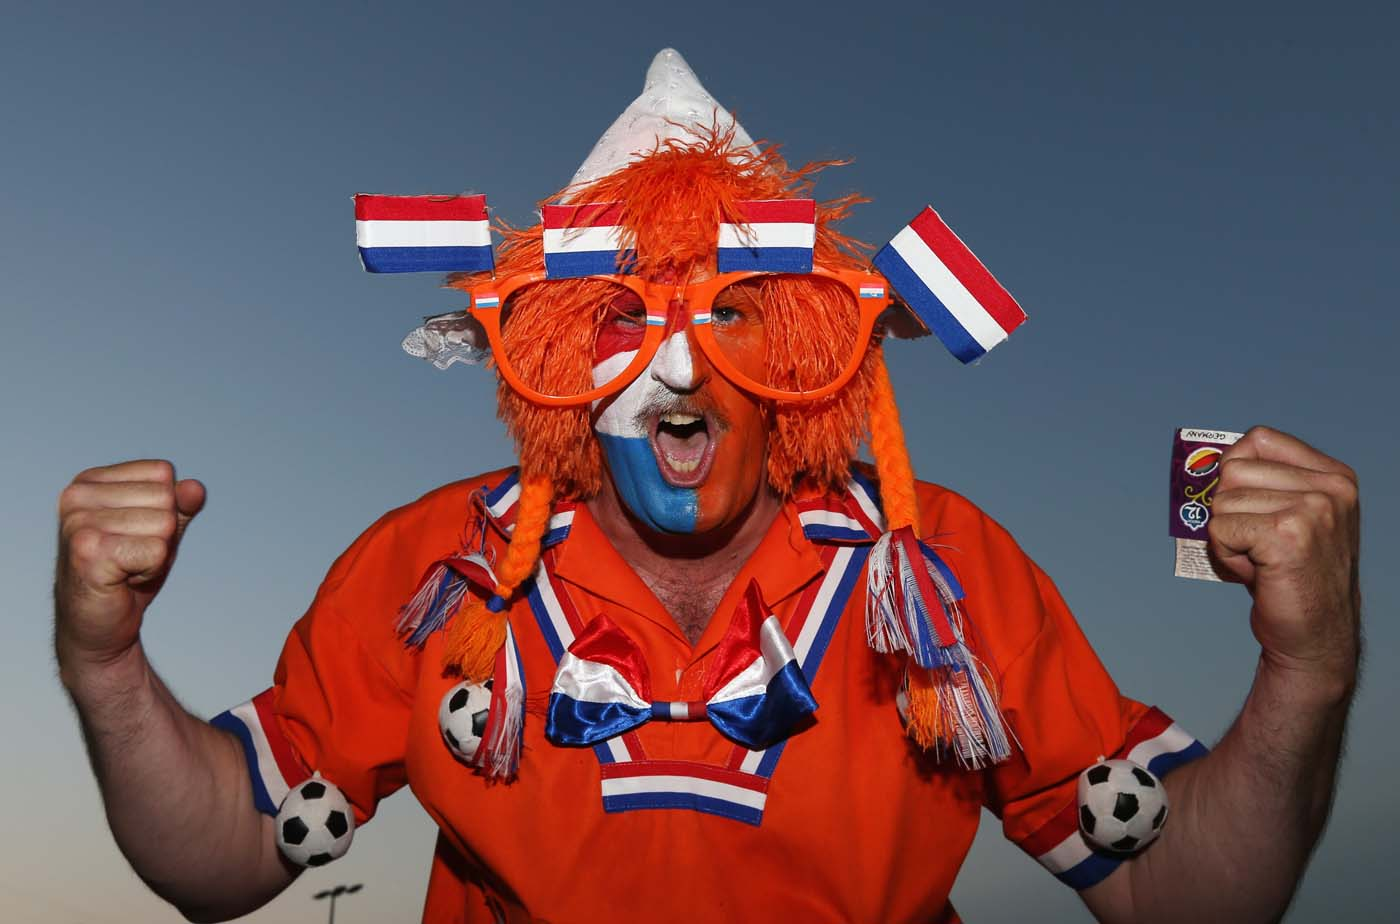 A Netherlands fan enjoys the atmosphere prior to the UEFA EURO 2012 group B match between Netherlands and Germany at Metalist Stadium on June 13, 2012 in Kharkov, Ukraine. (Julian Finney/Getty Images)